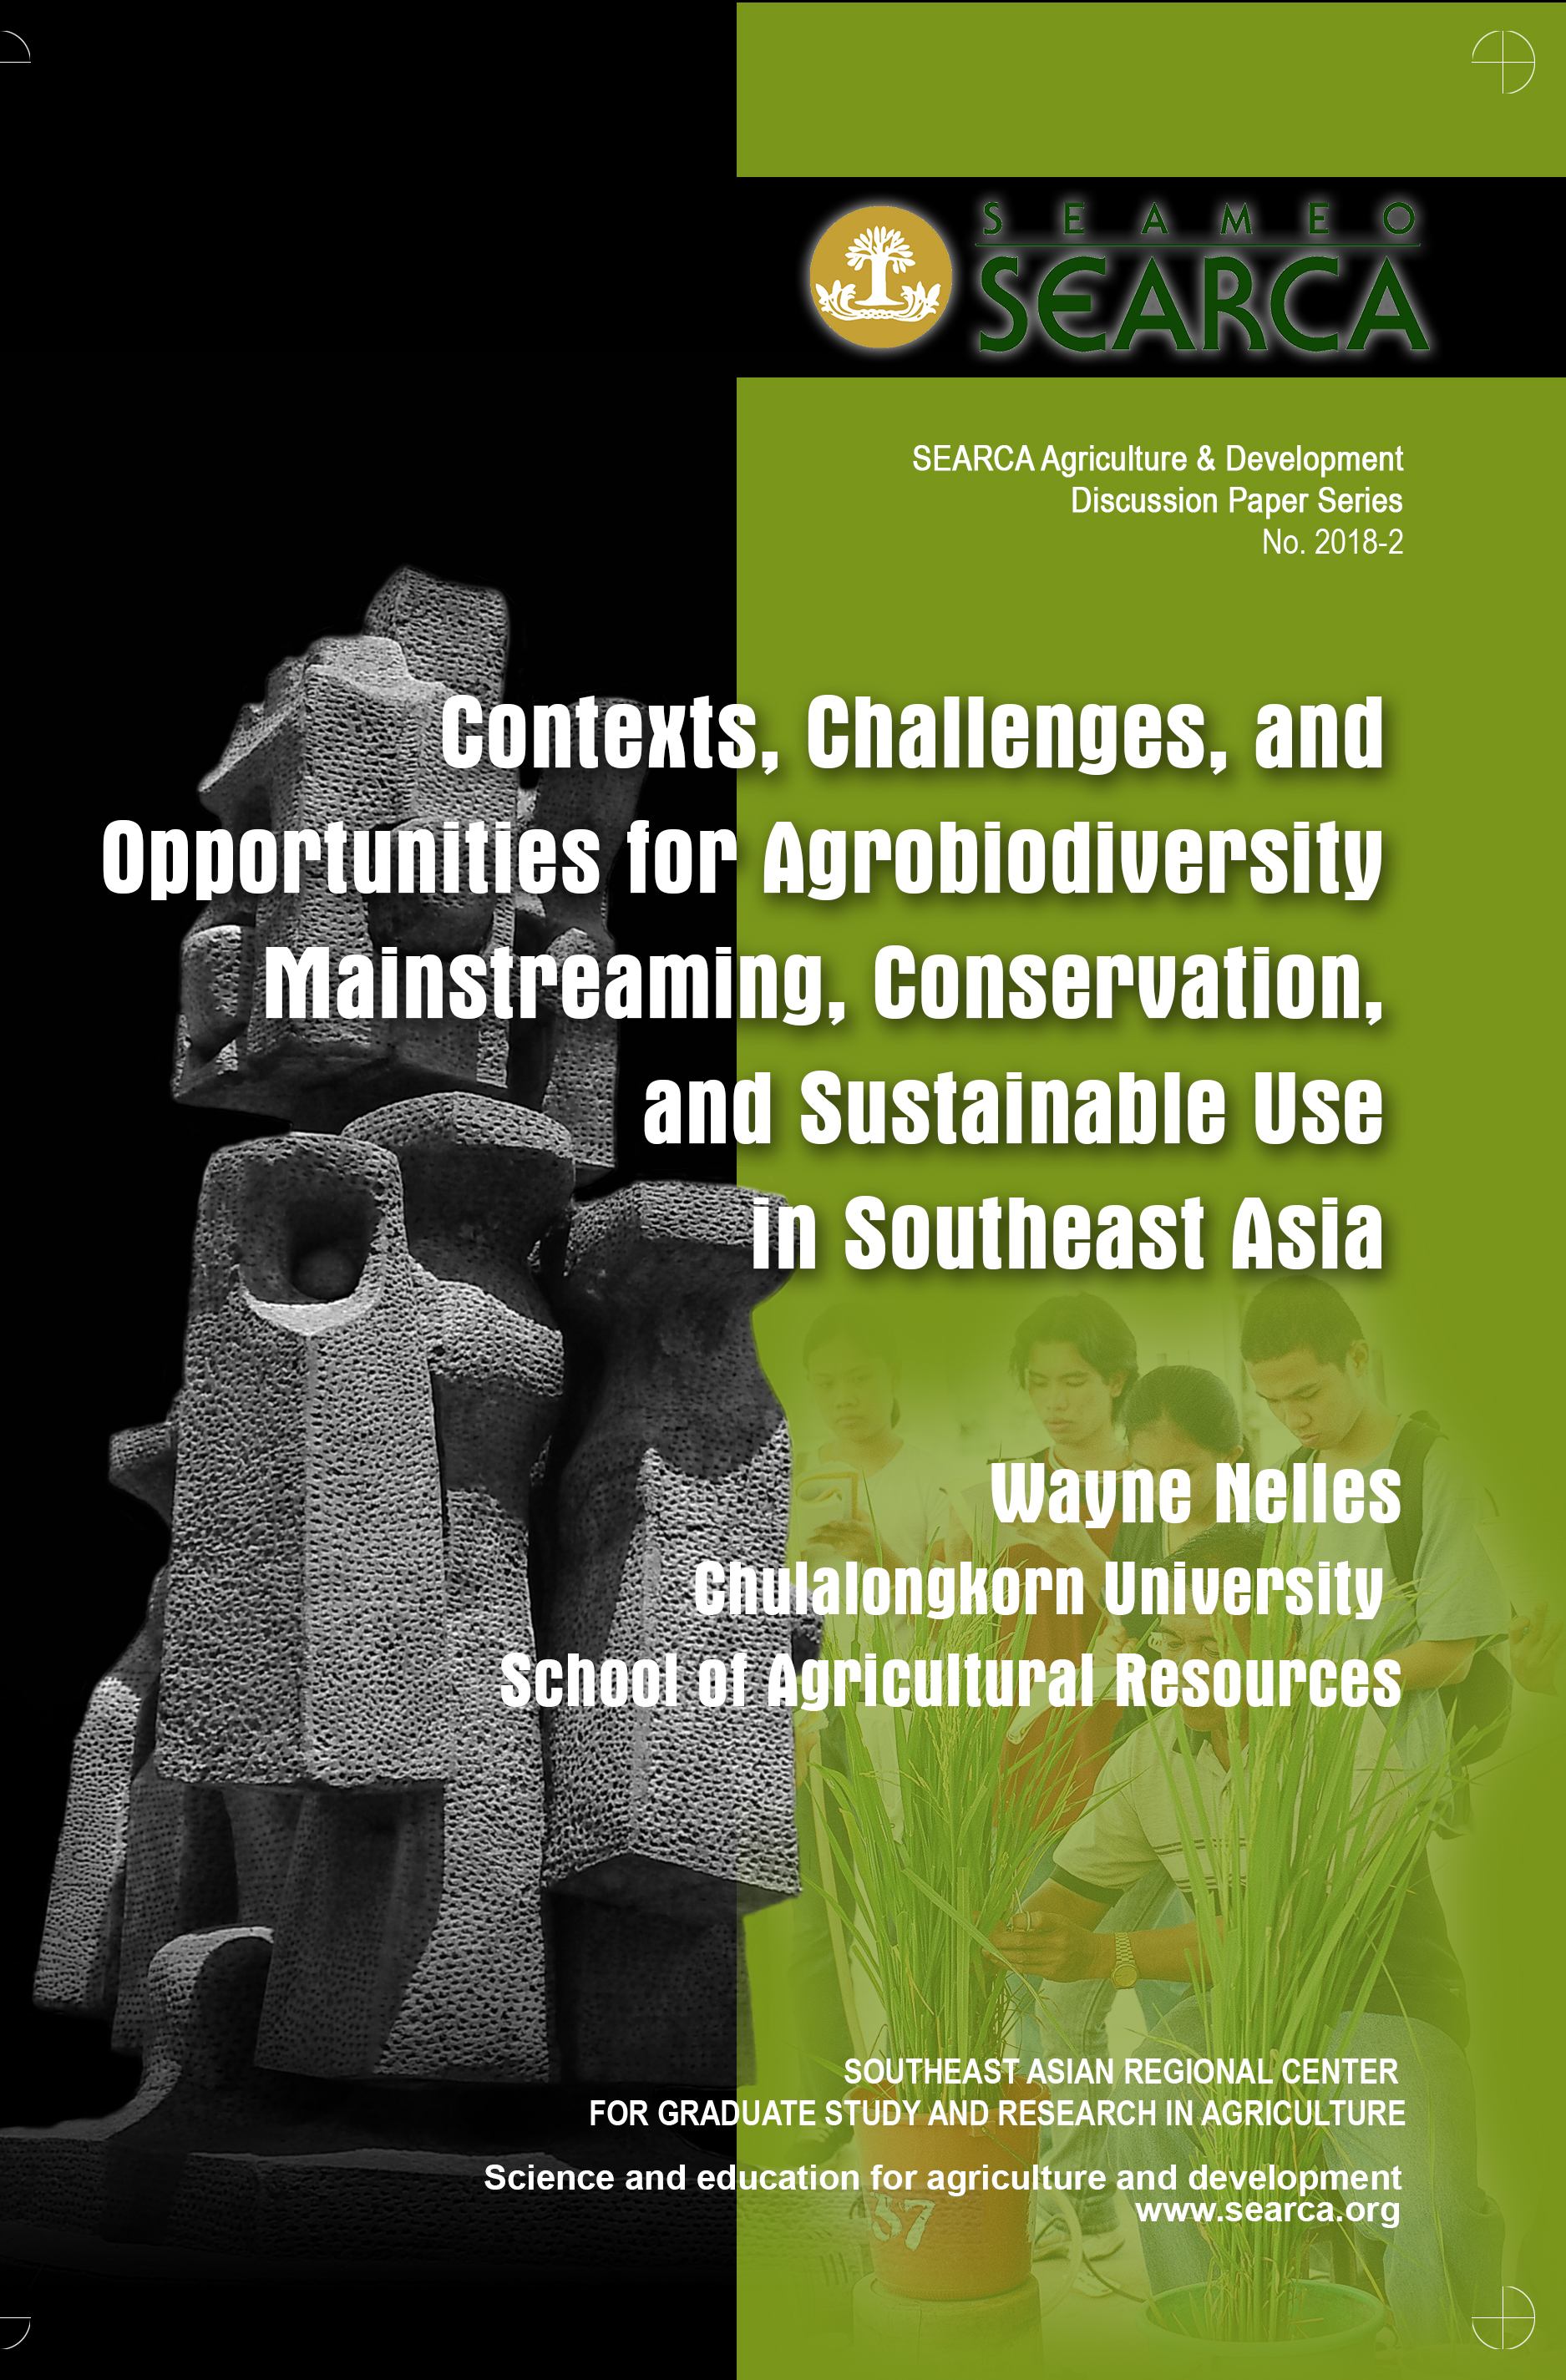 Contexts, Challenges, and Opportunities for Agrobiodiversity Mainstreaming, Conservation, and Sustainable Use in Southeast Asia